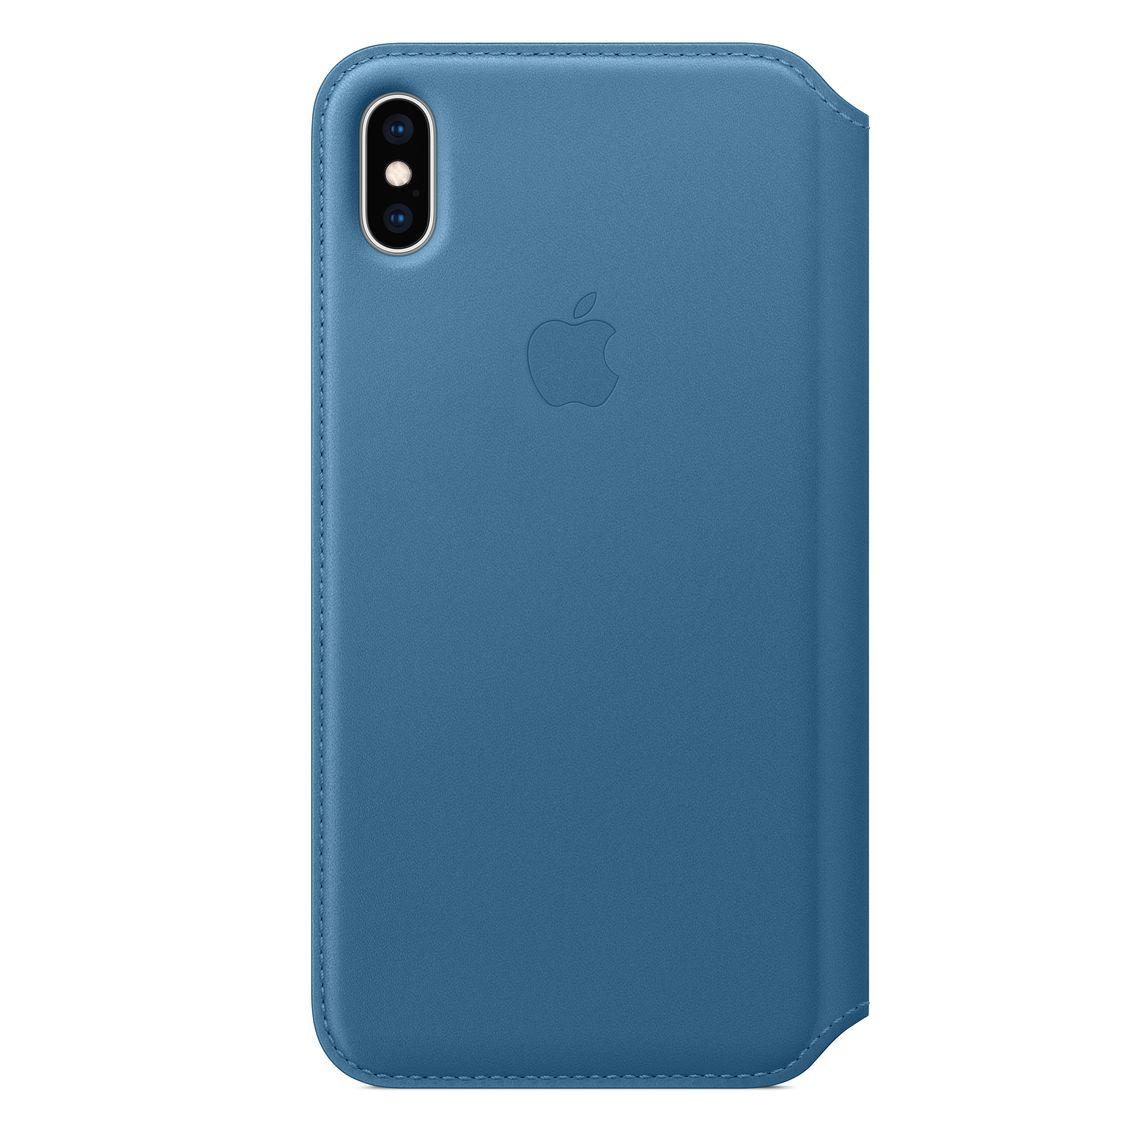 outlet store ed337 8ec91 iPhone XS Max Leather Folio - Cape Cod Blue